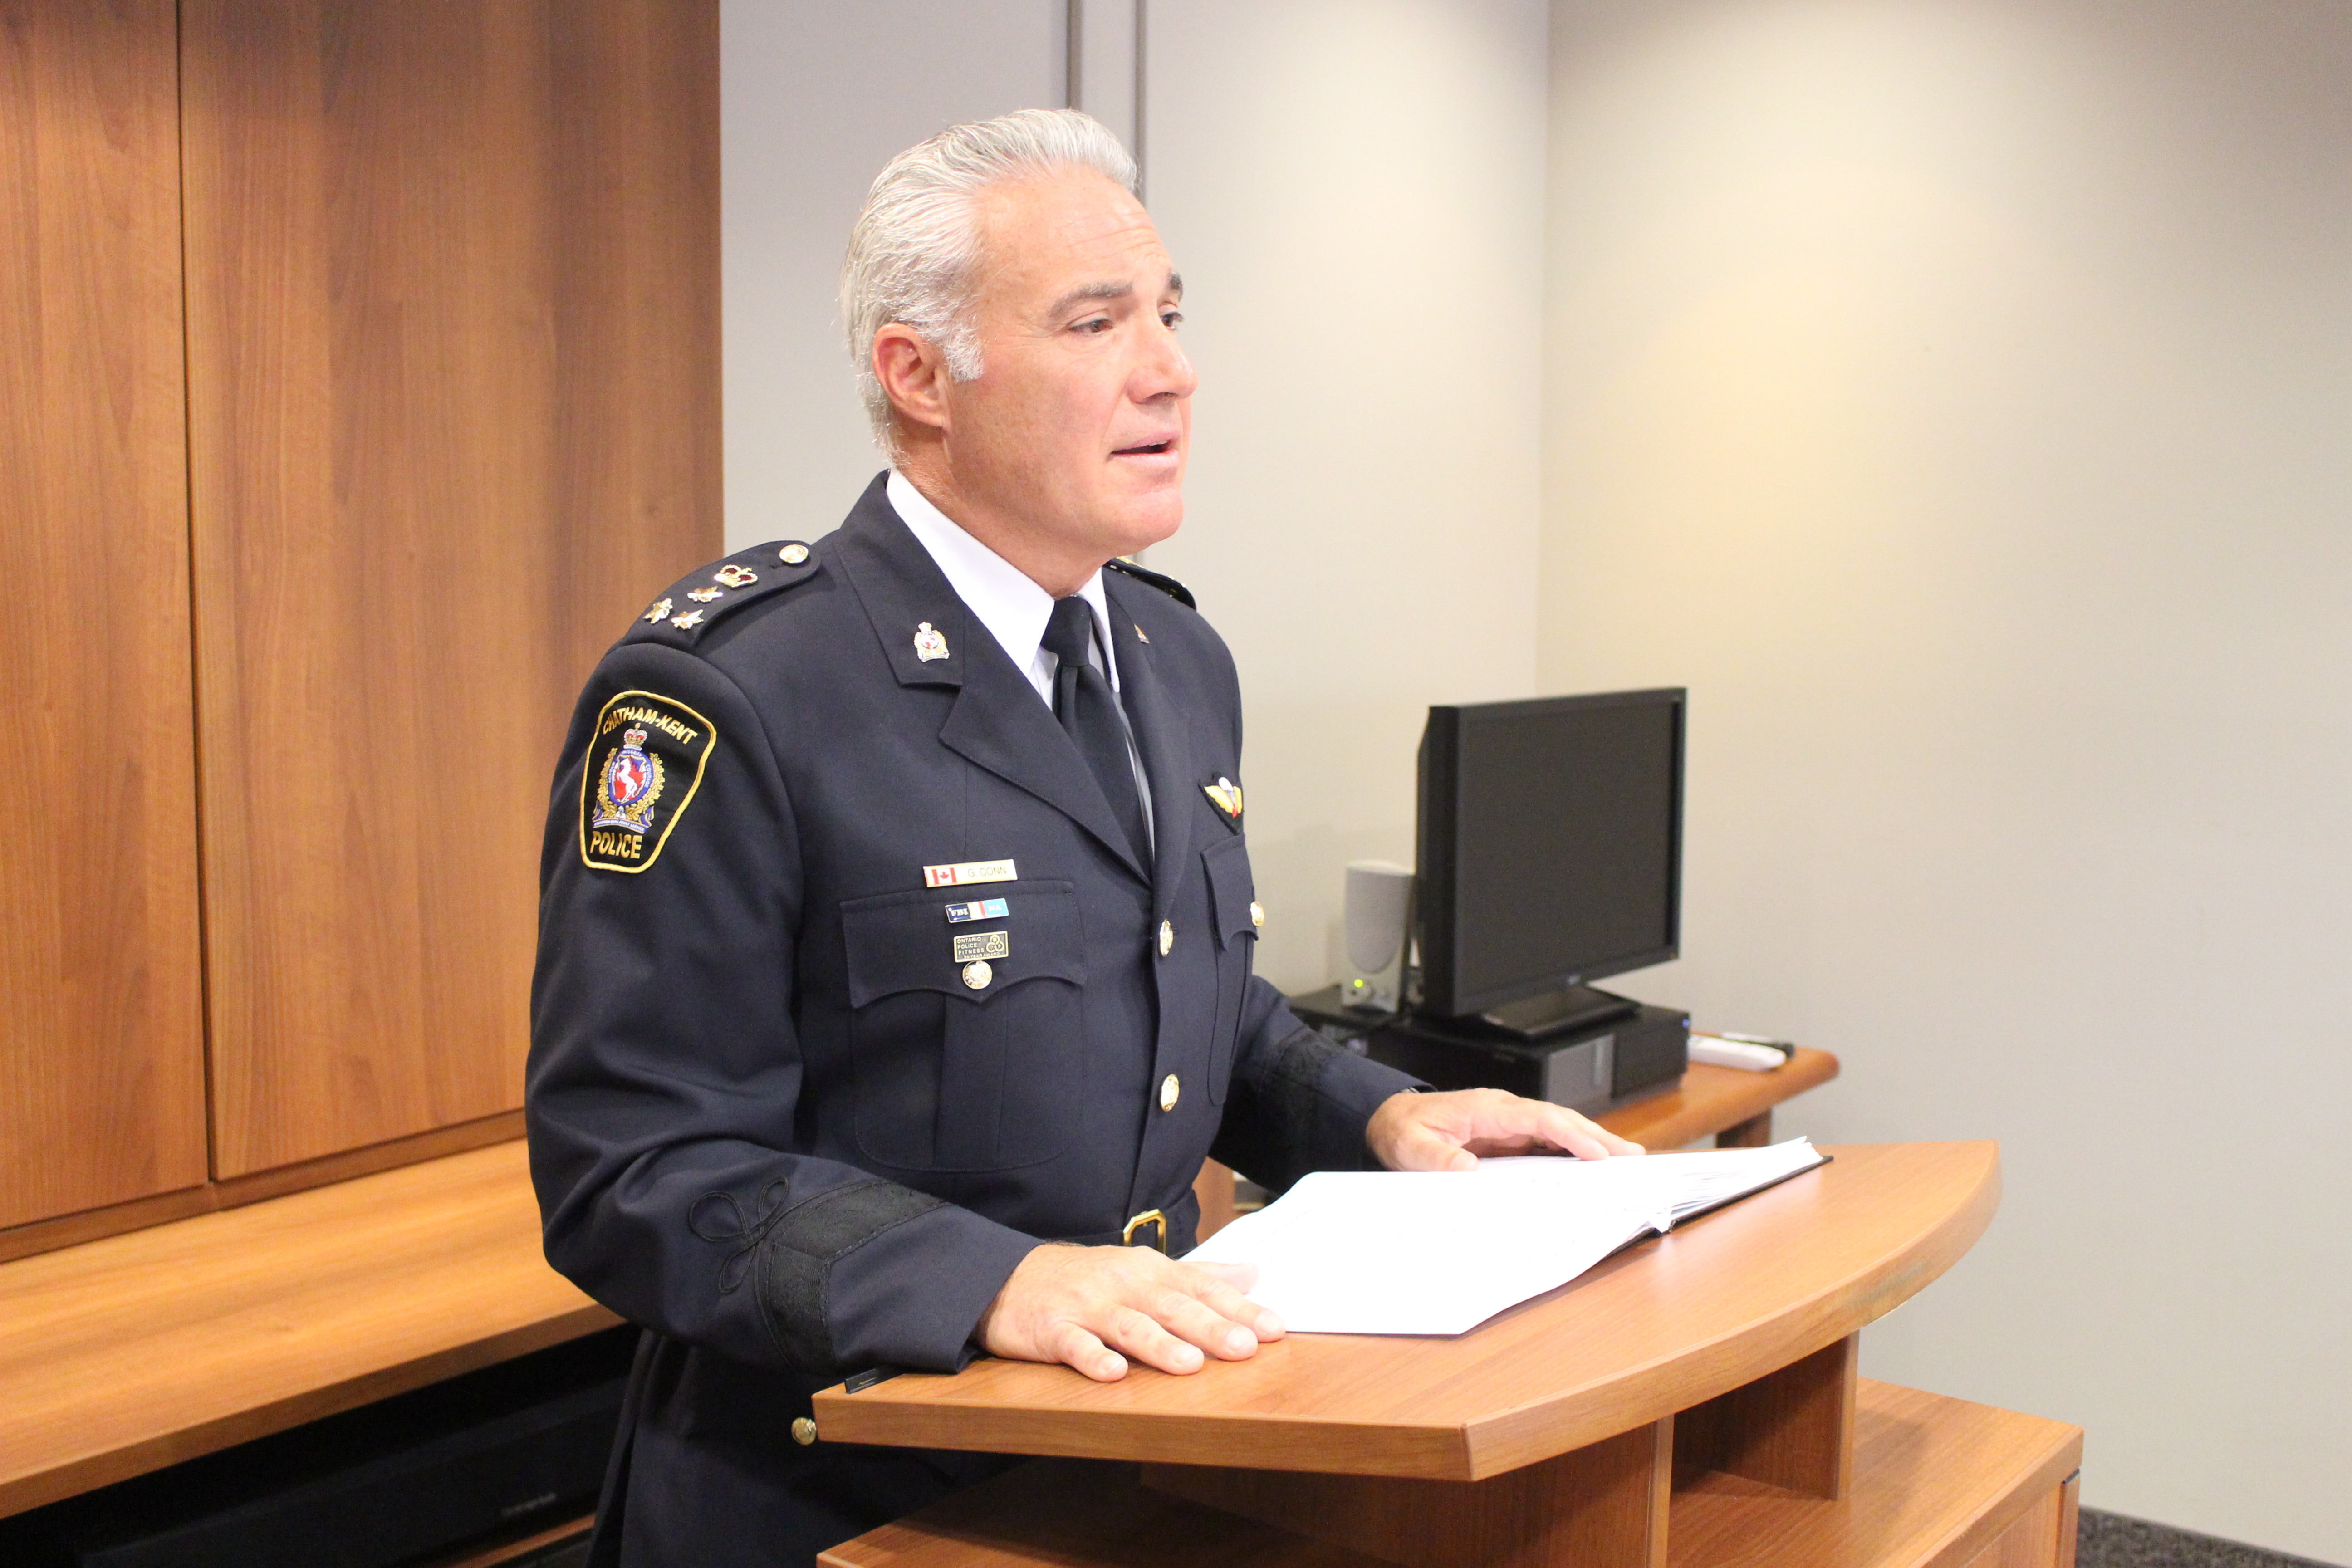 Chatham-Kent Police Chief Gary Conn at police headquarters, July 23, 2015. (Photo by Mike Vlasveld)